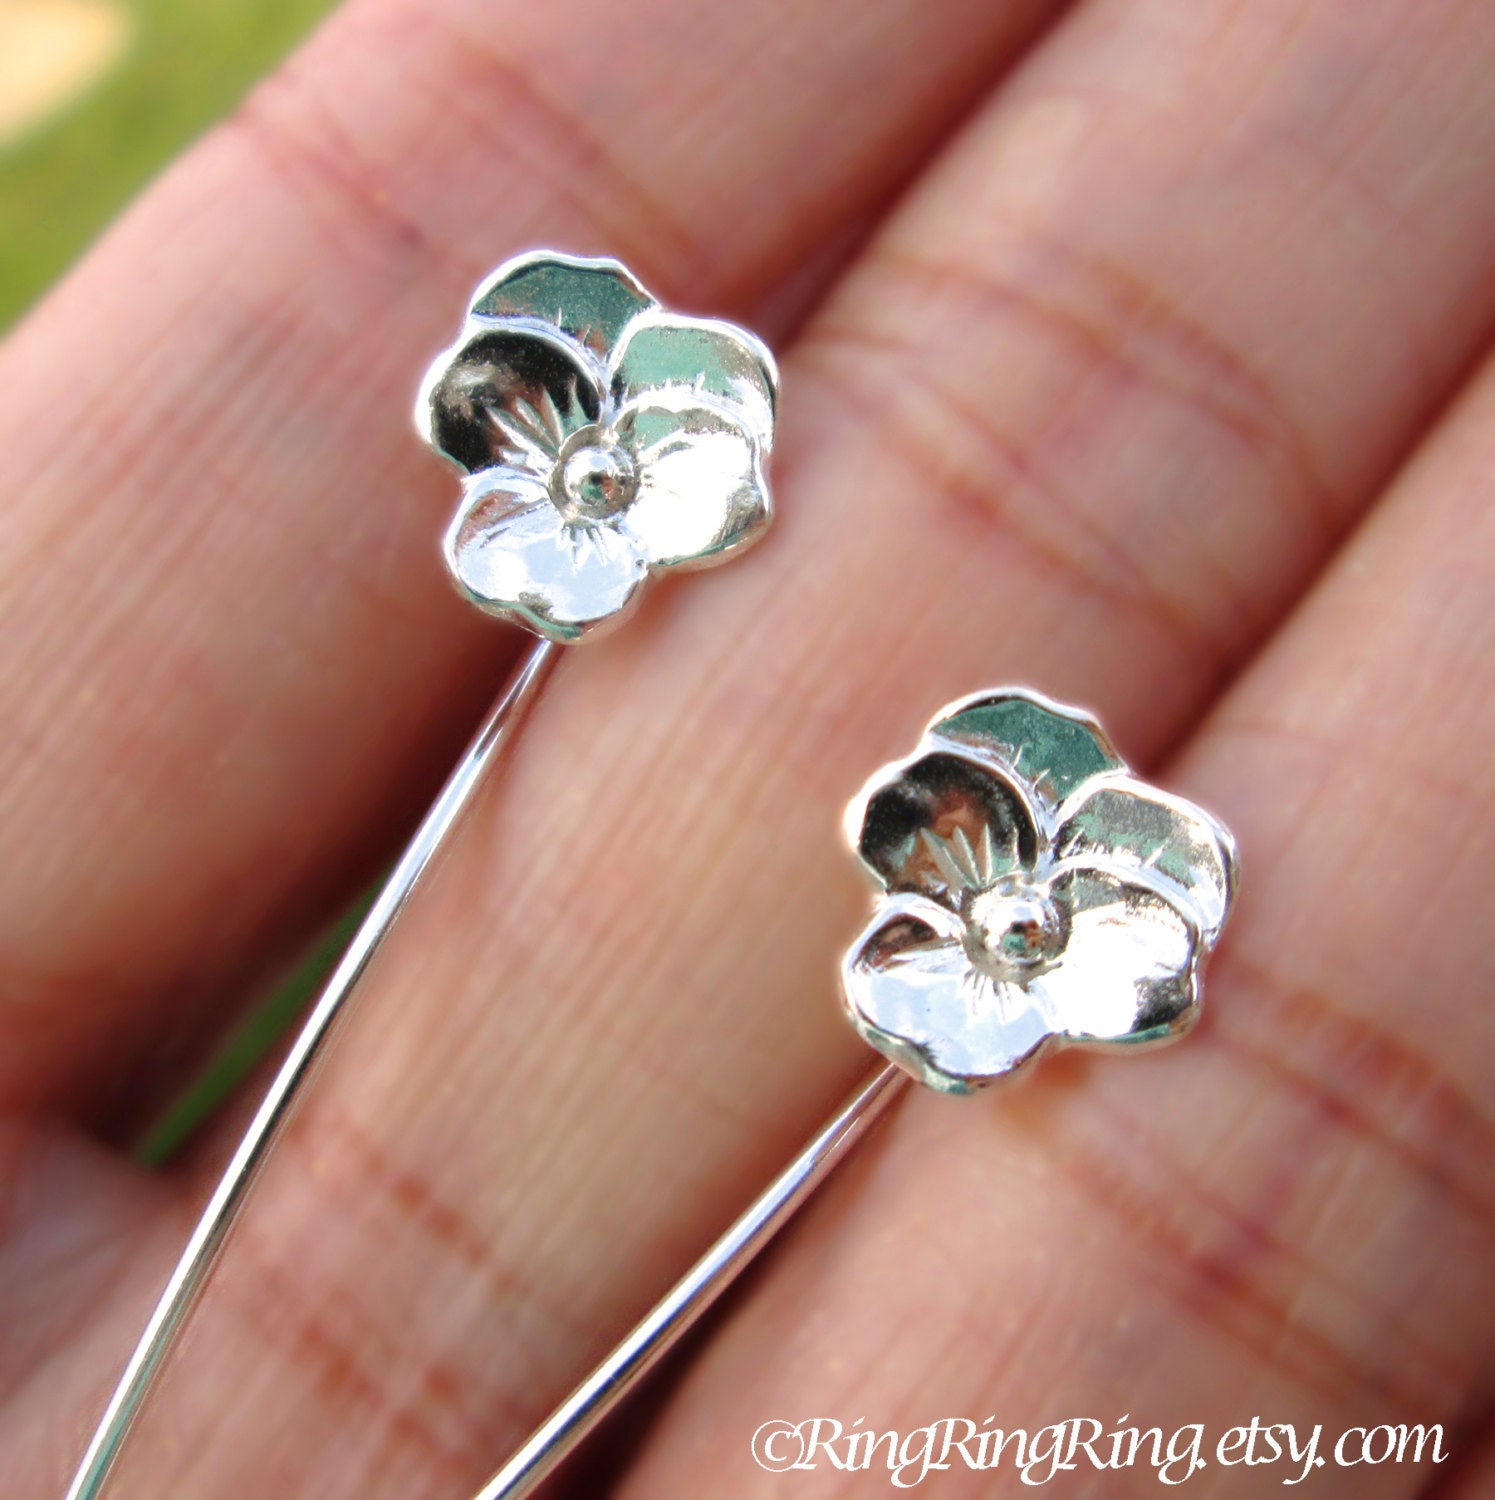 violet pansy flower earrings sterling silver earrings jewelry. Black Bedroom Furniture Sets. Home Design Ideas